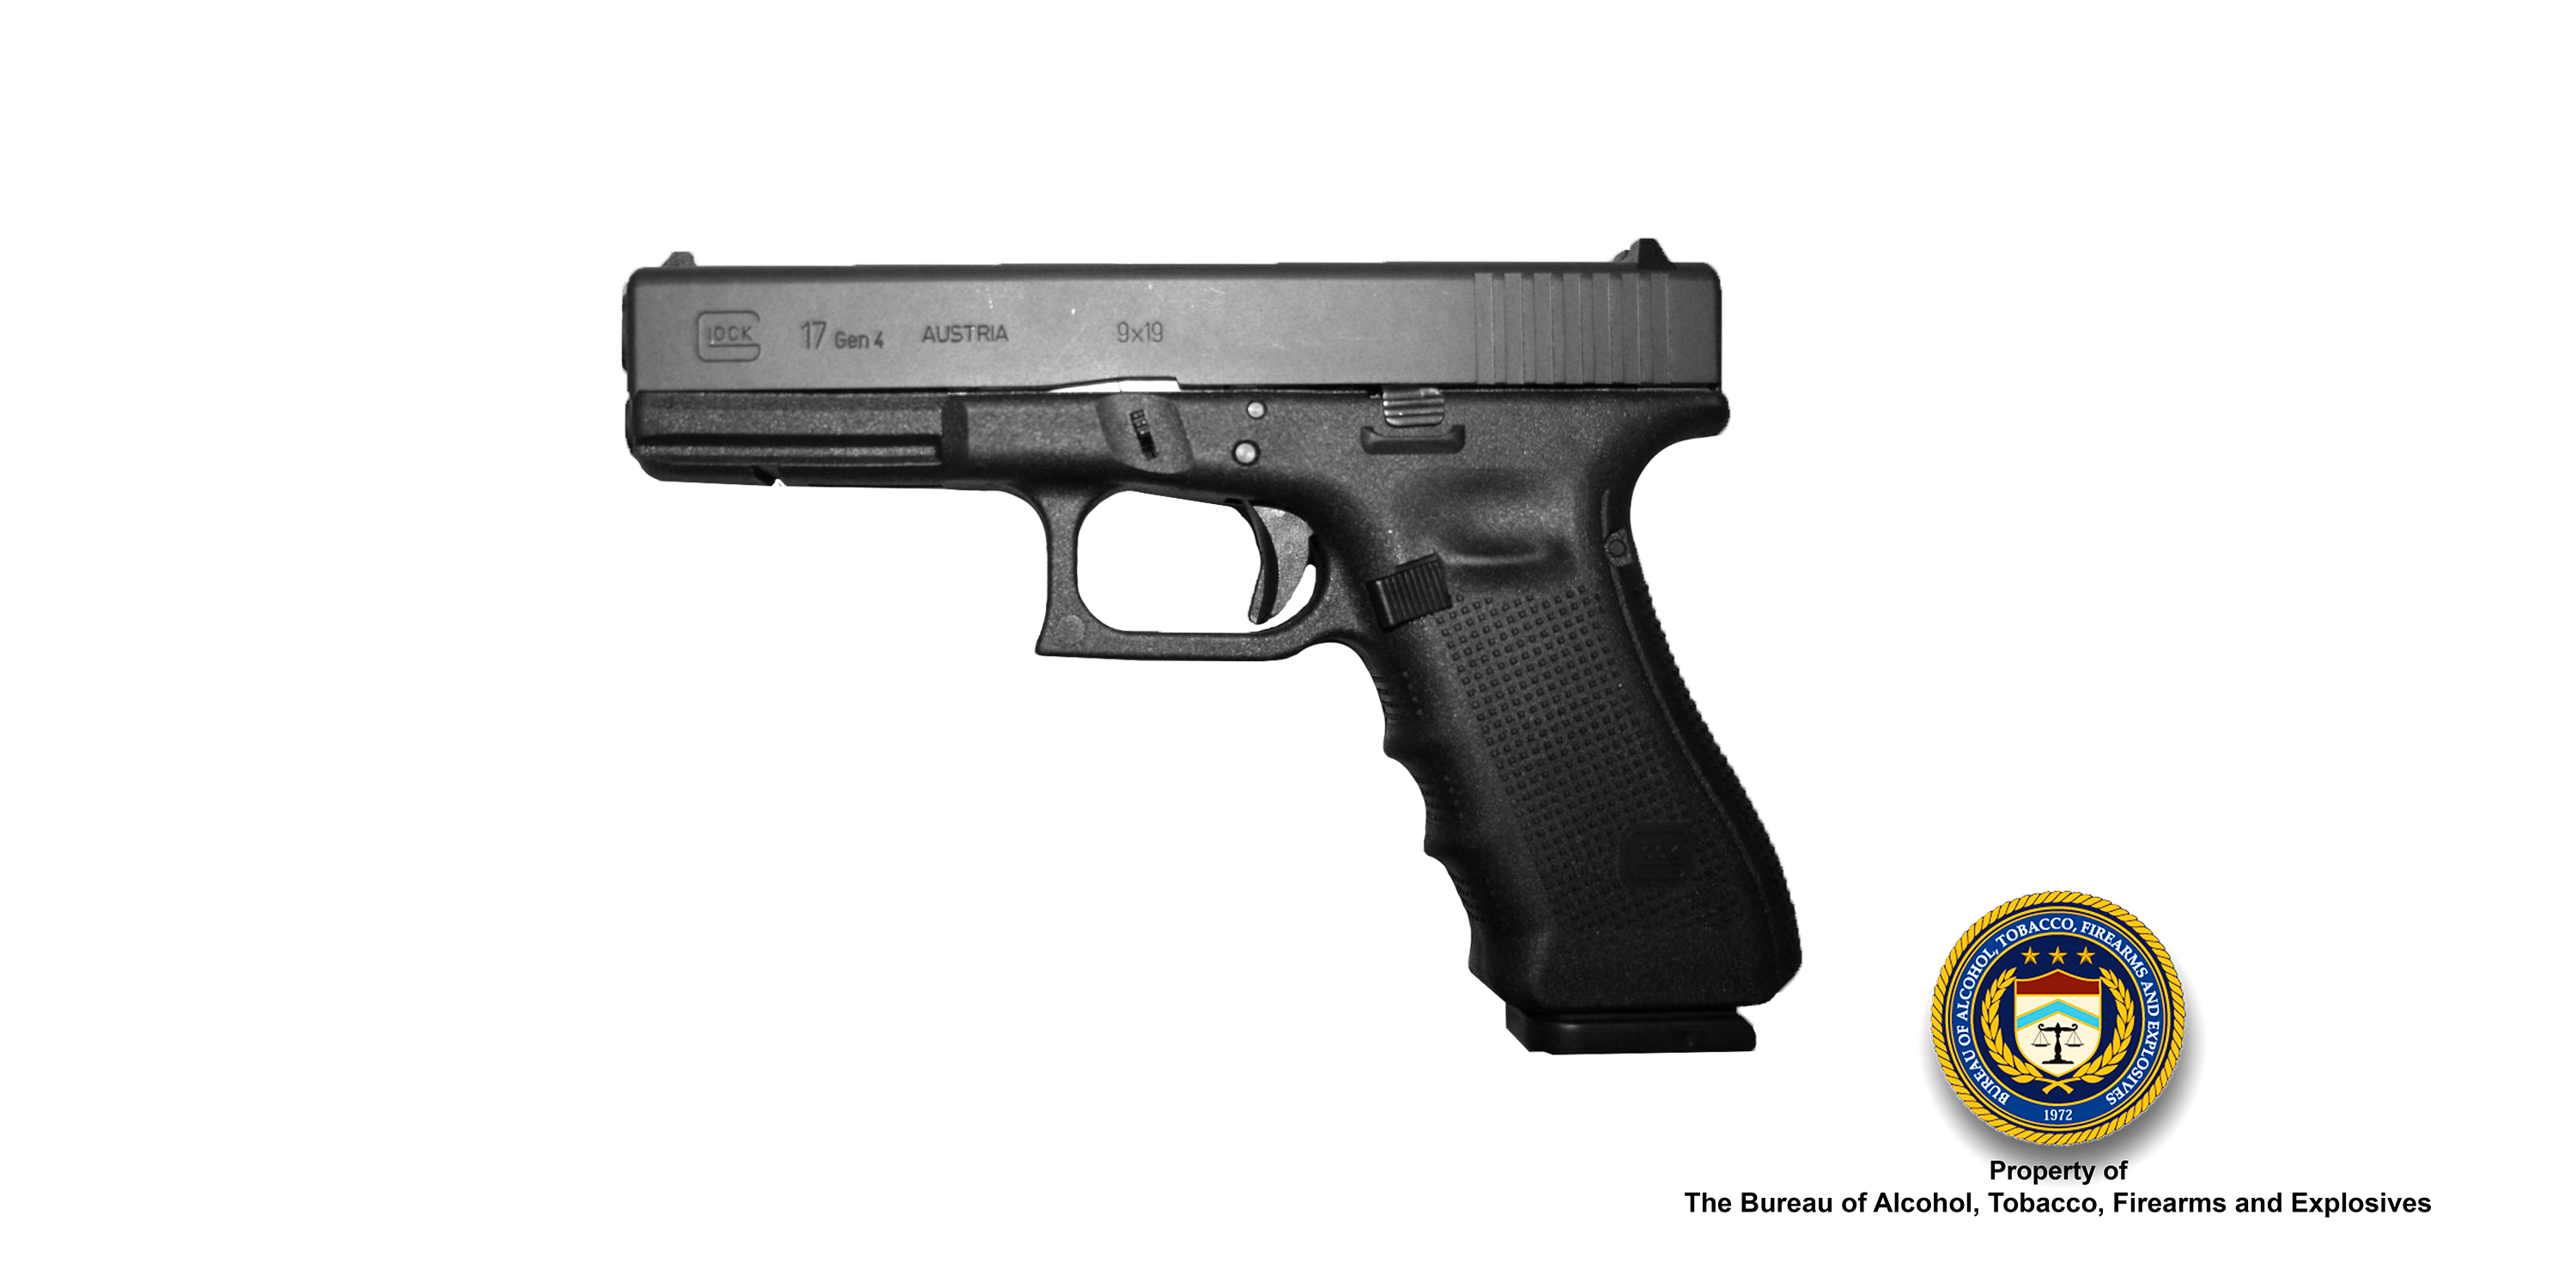 An image of a Glock Model 17 Semi-Automatic Pistol